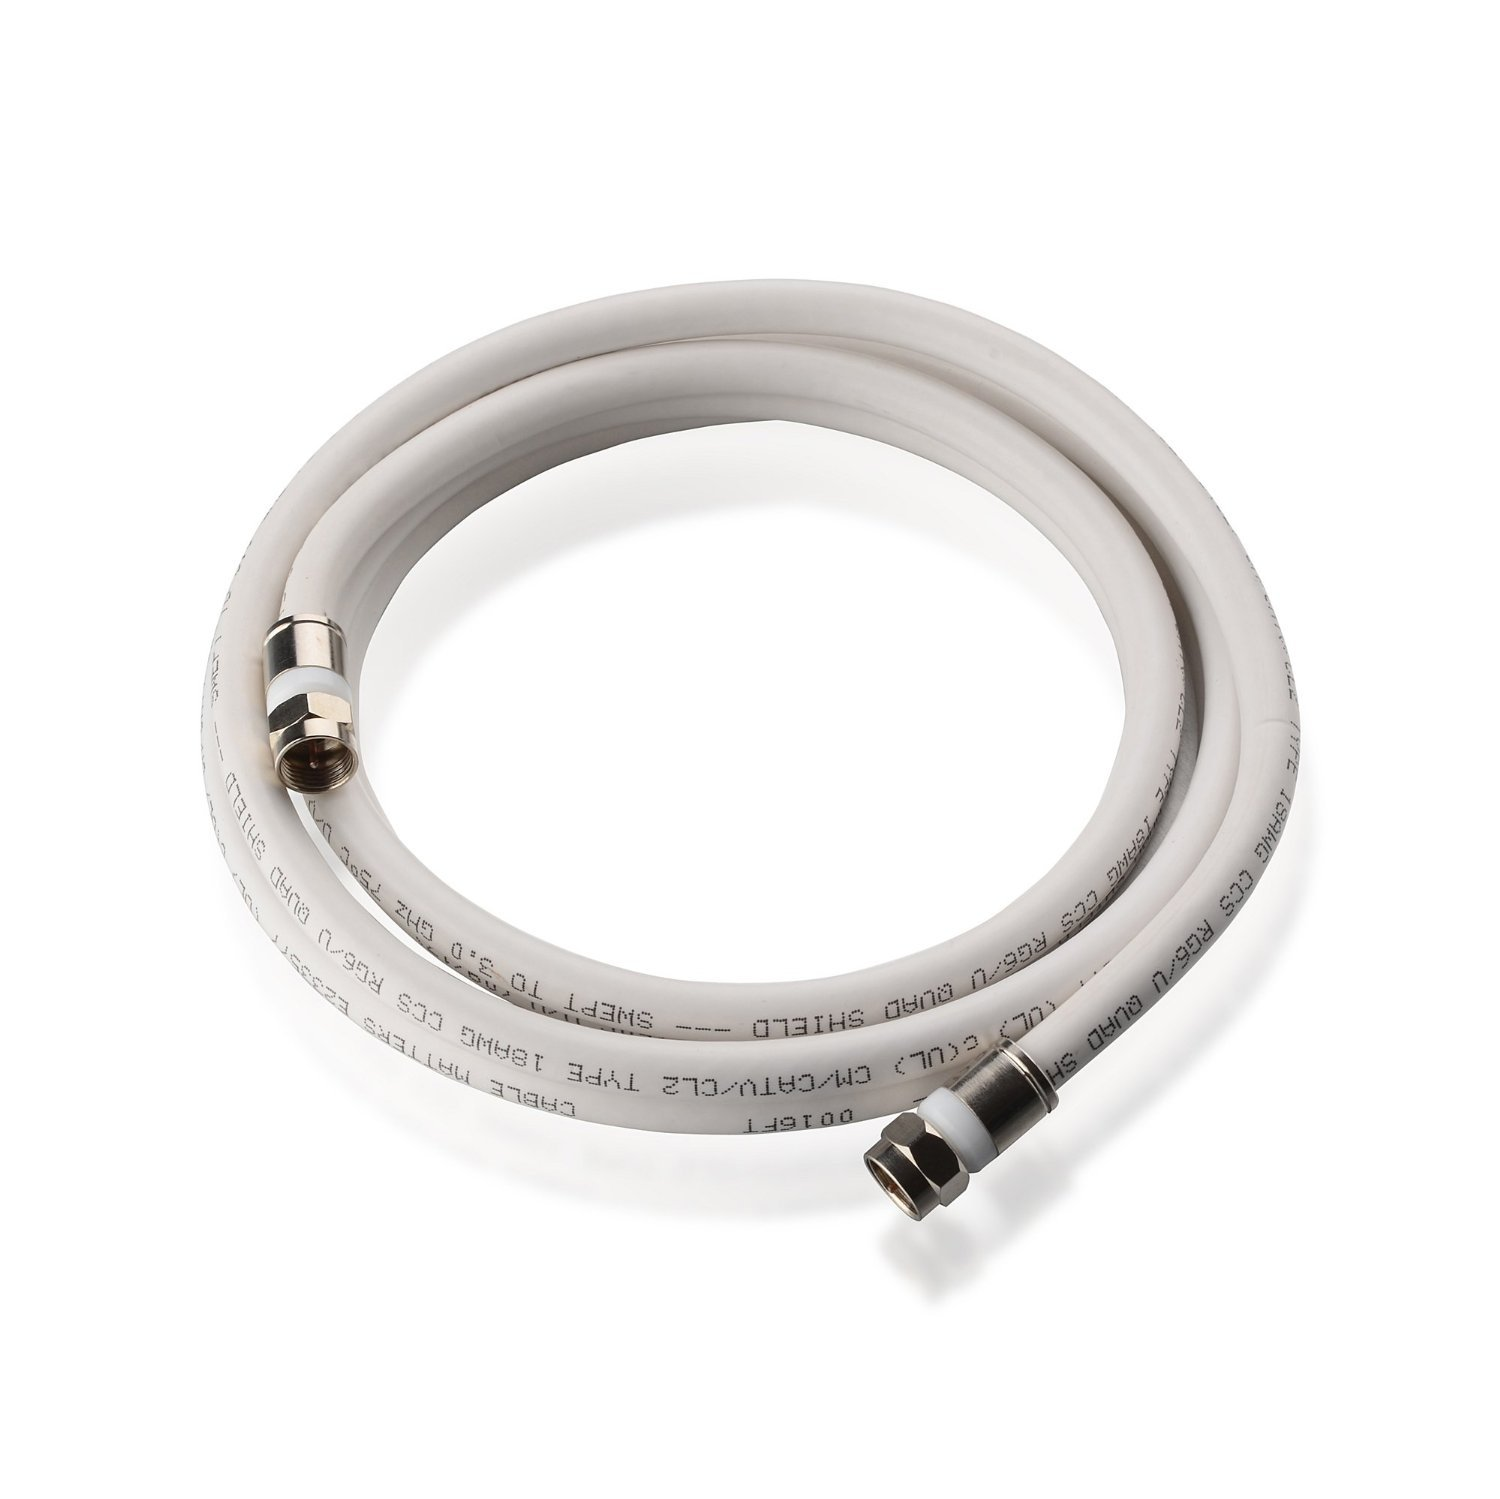 RG6 Cable, Coax Cable CM in Black 100 Feet Quad Shielded Coaxial Cable Cable Matters CL2 In-Wall Rated